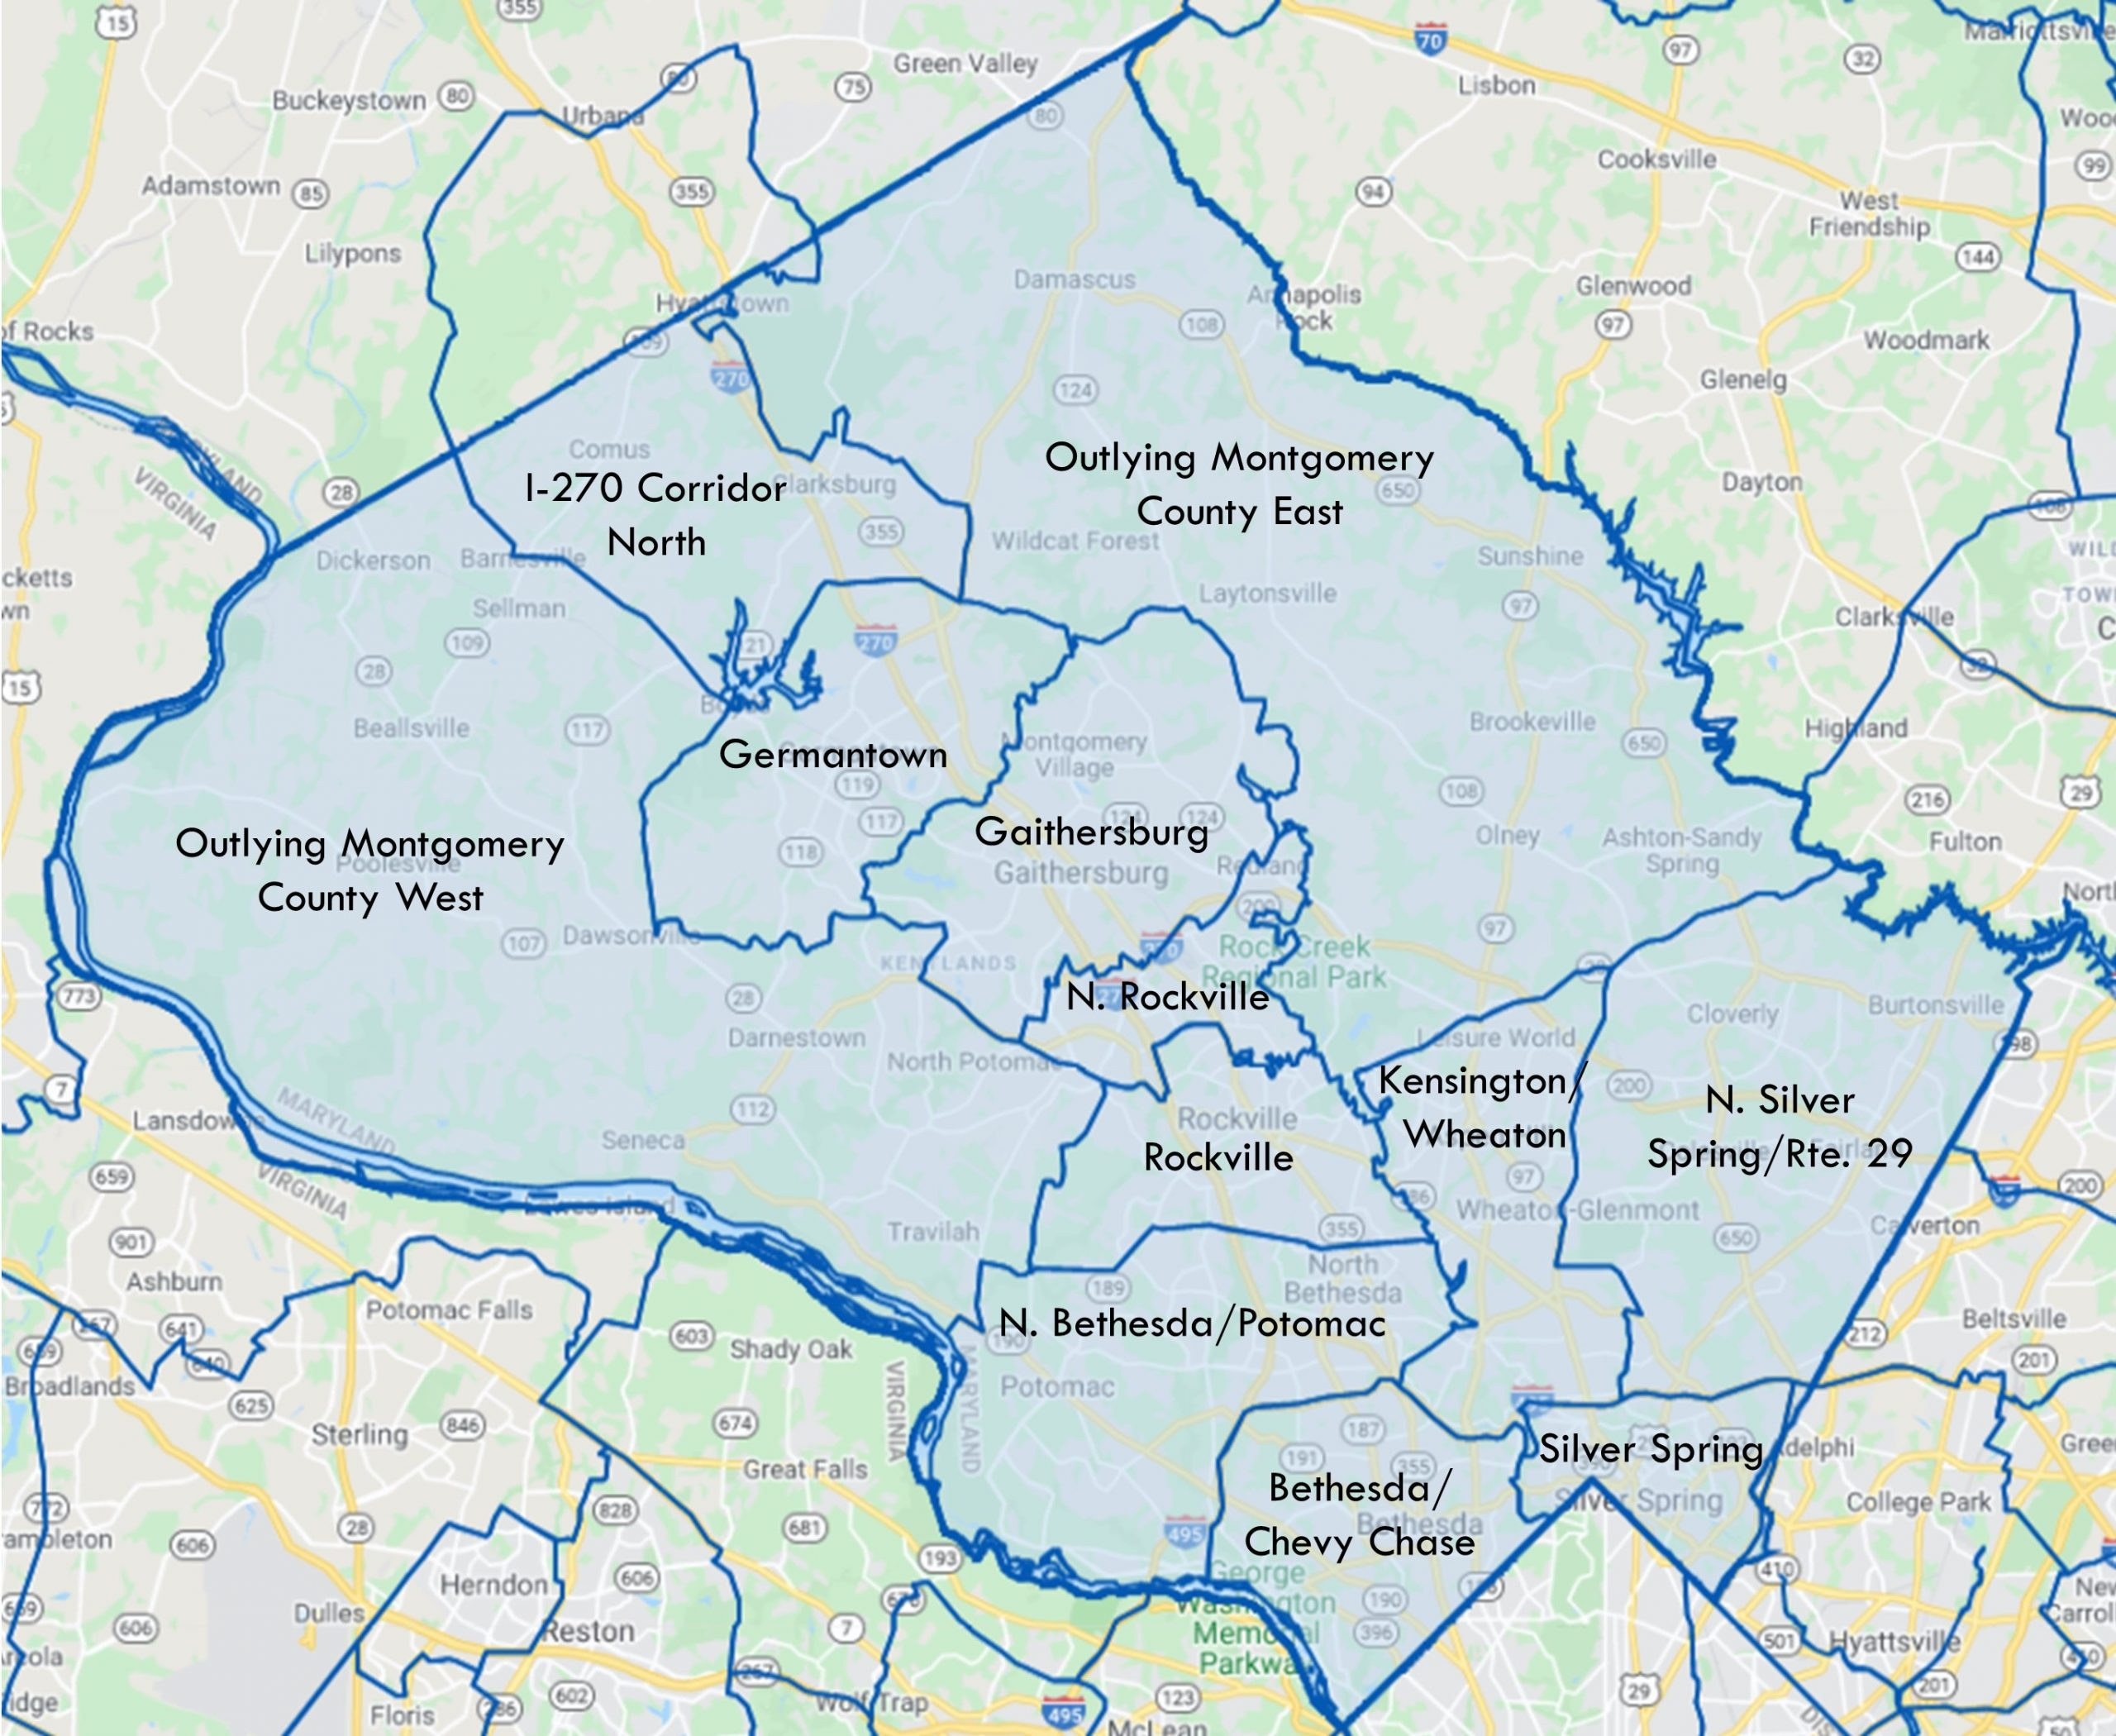 a map of Montgomery County that highlights the office submarkets of Bethesda/Chevy Chase, North Bethesda/Potomac, North Silver Spring/Route 29, Silver Spring, Kensington/Wheaton, Rockville, North Rockville, Gaithersburg, Germantown, Outlying Montgomery County East and outlying Montgomery County West